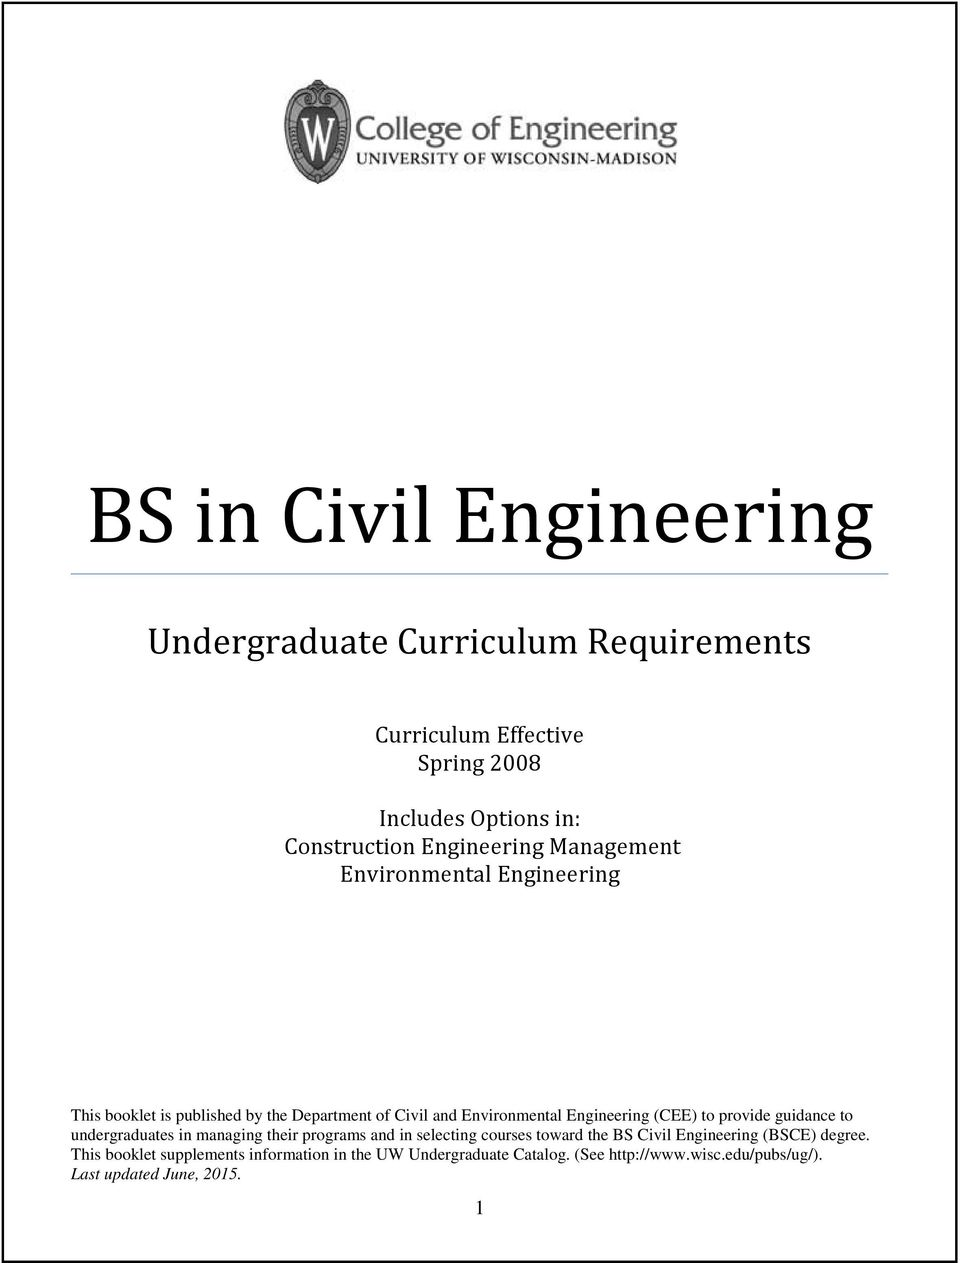 (CEE) to provide guidance to undergraduates in managing their programs and in selecting courses toward the BS Civil Engineering